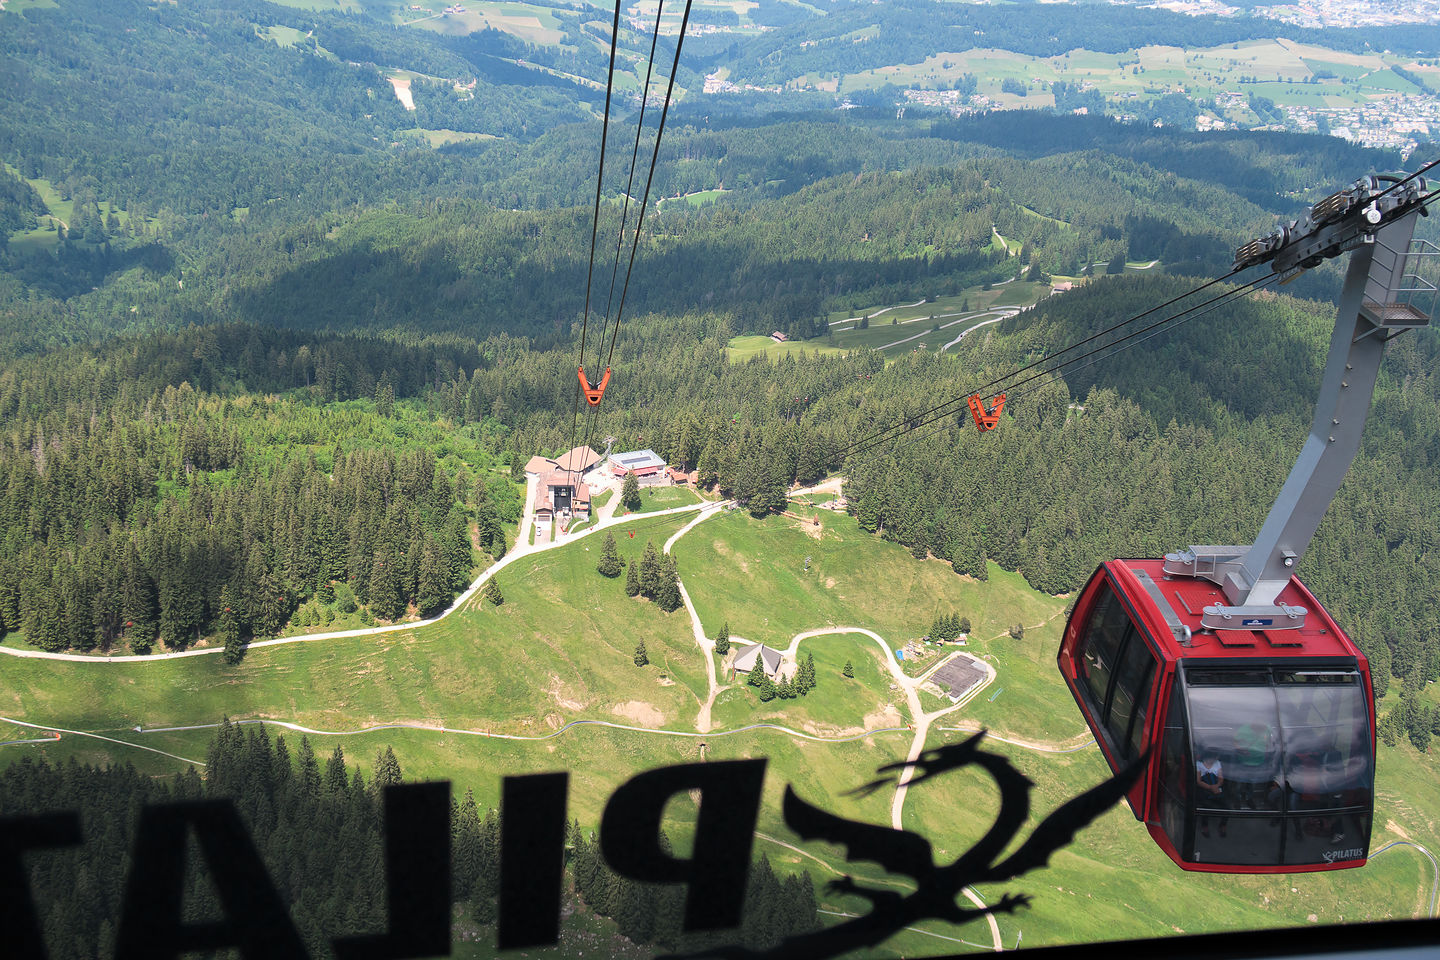 3rd leg of Golden Round Trip - cable car descent from Mt. Pilatus